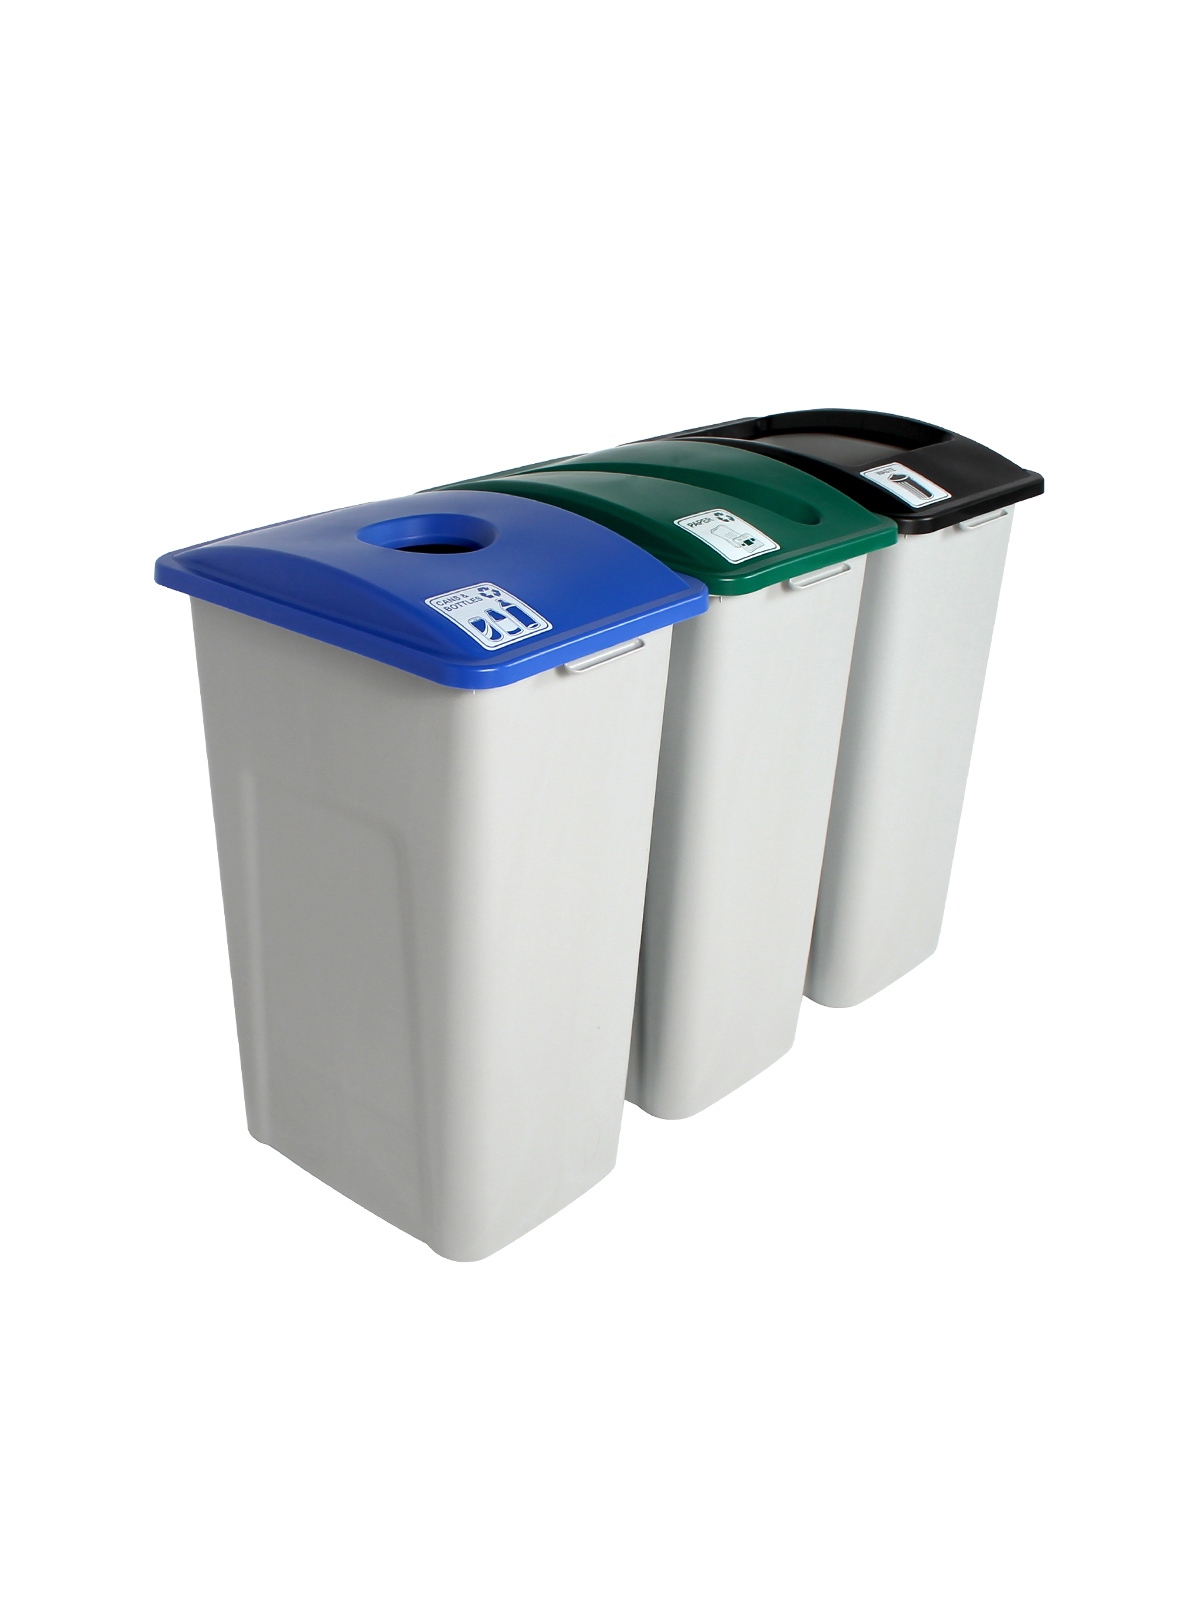 WASTE WATCHER XL - Triple - Cans & Bottles-Paper-Waste - Circle-Slot-Full - Grey-Blue-Green-Black